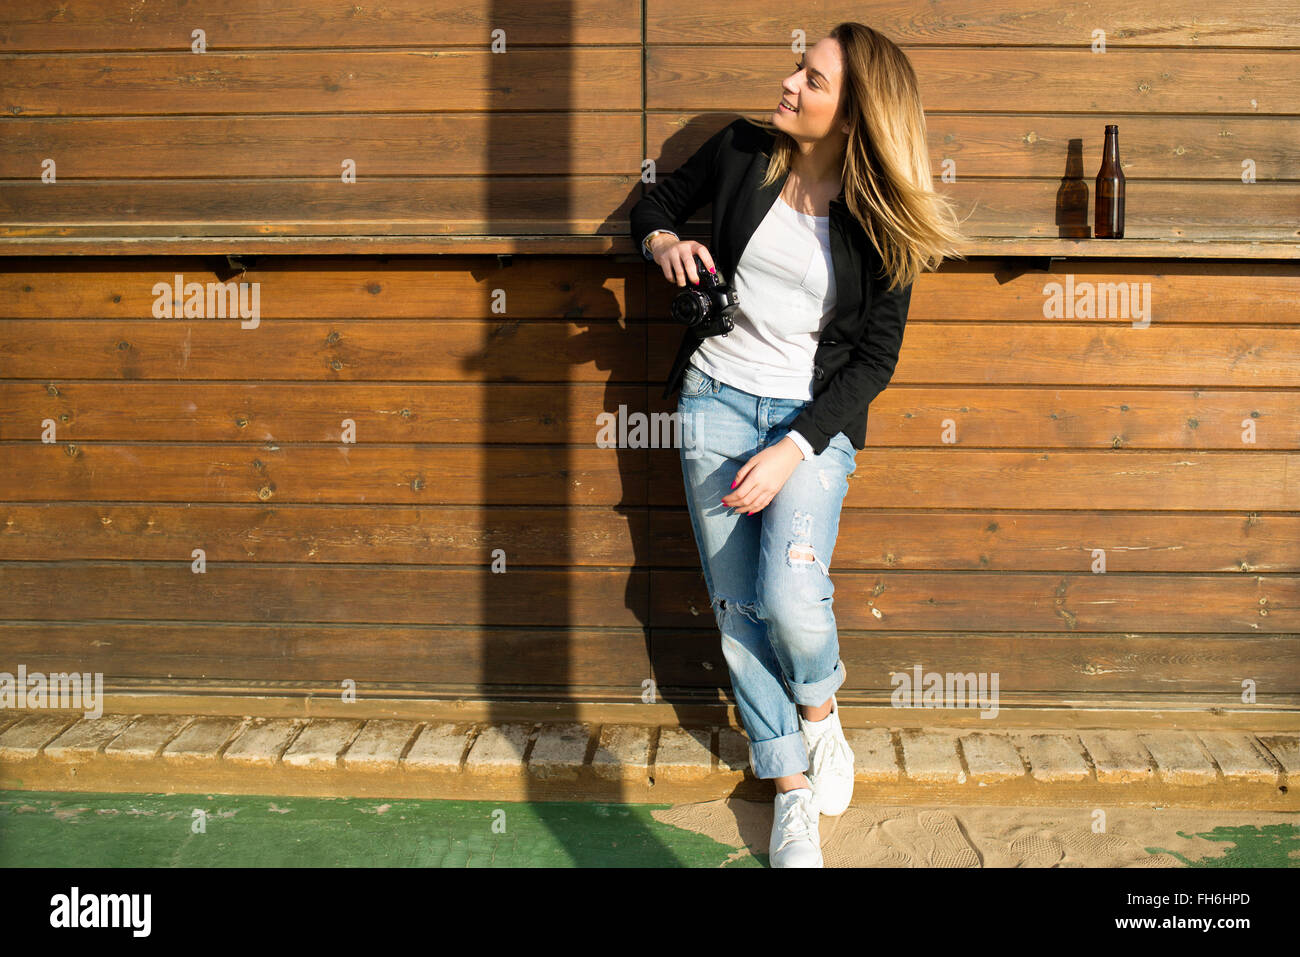 Portrait of woman with camera watching something - Stock Image